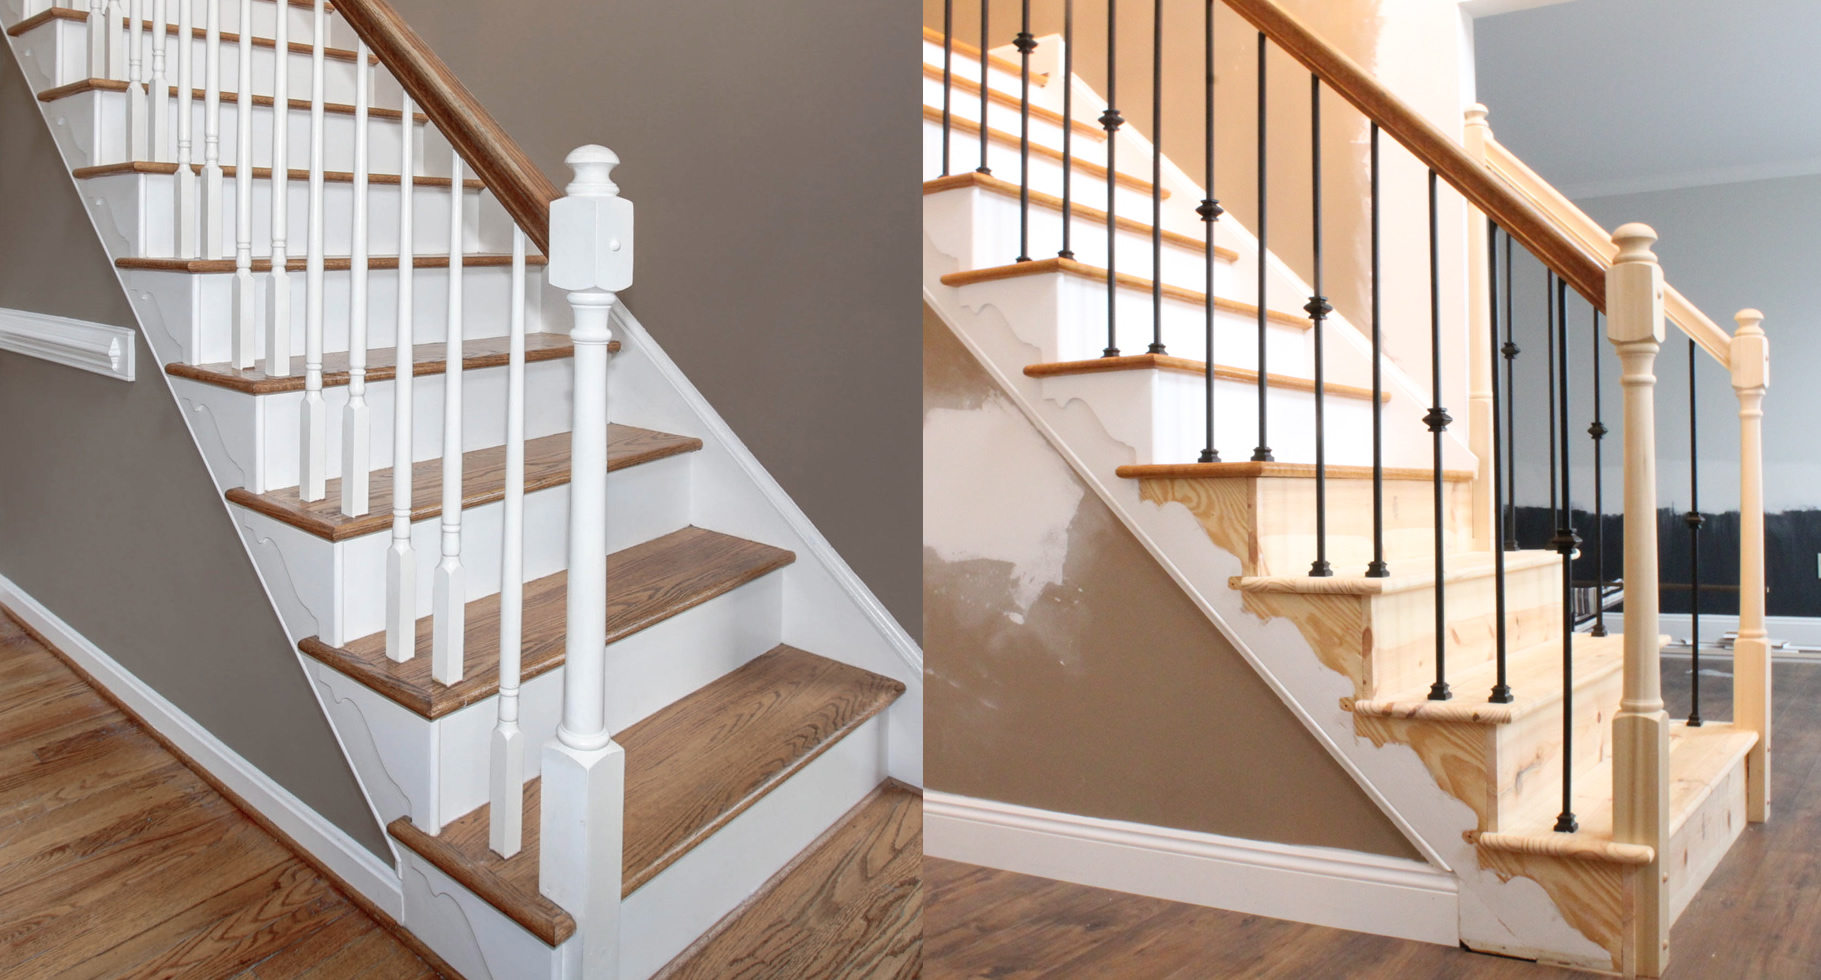 Changing Wood Stair Balusters To Iron 8 Steps With Video